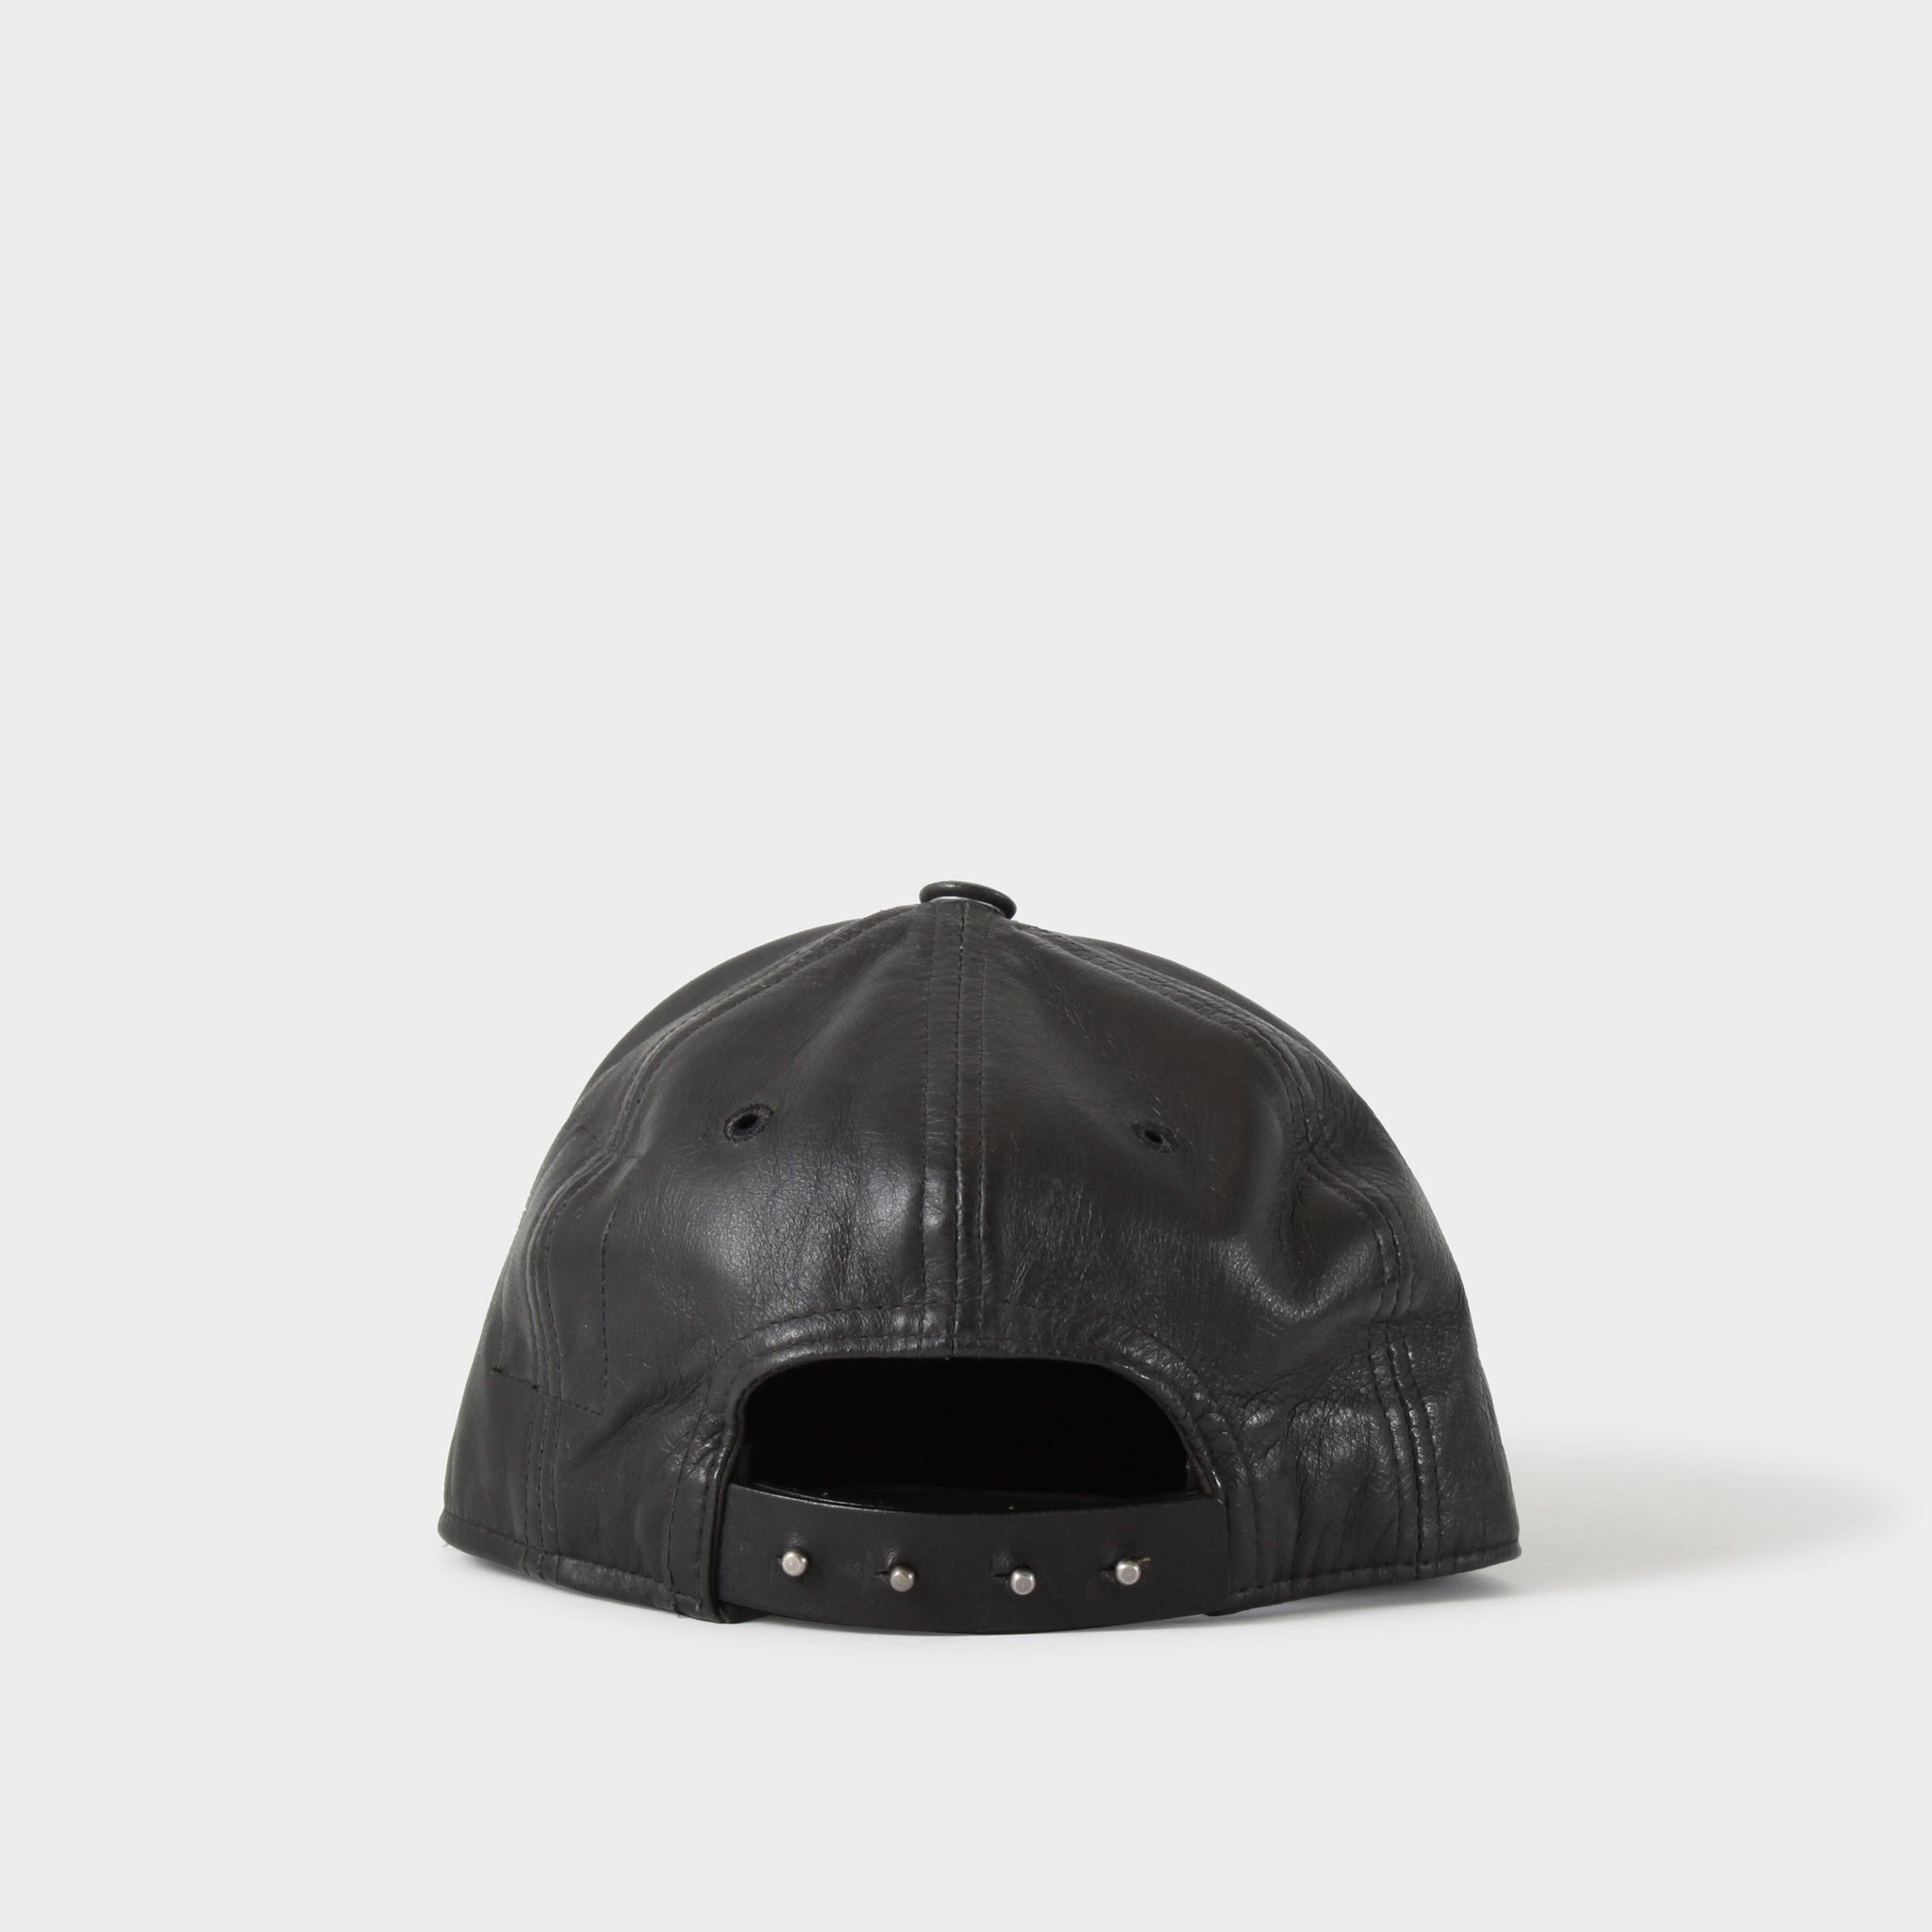 Rick Owens DRKSDHW Leather 6 Panel Hat